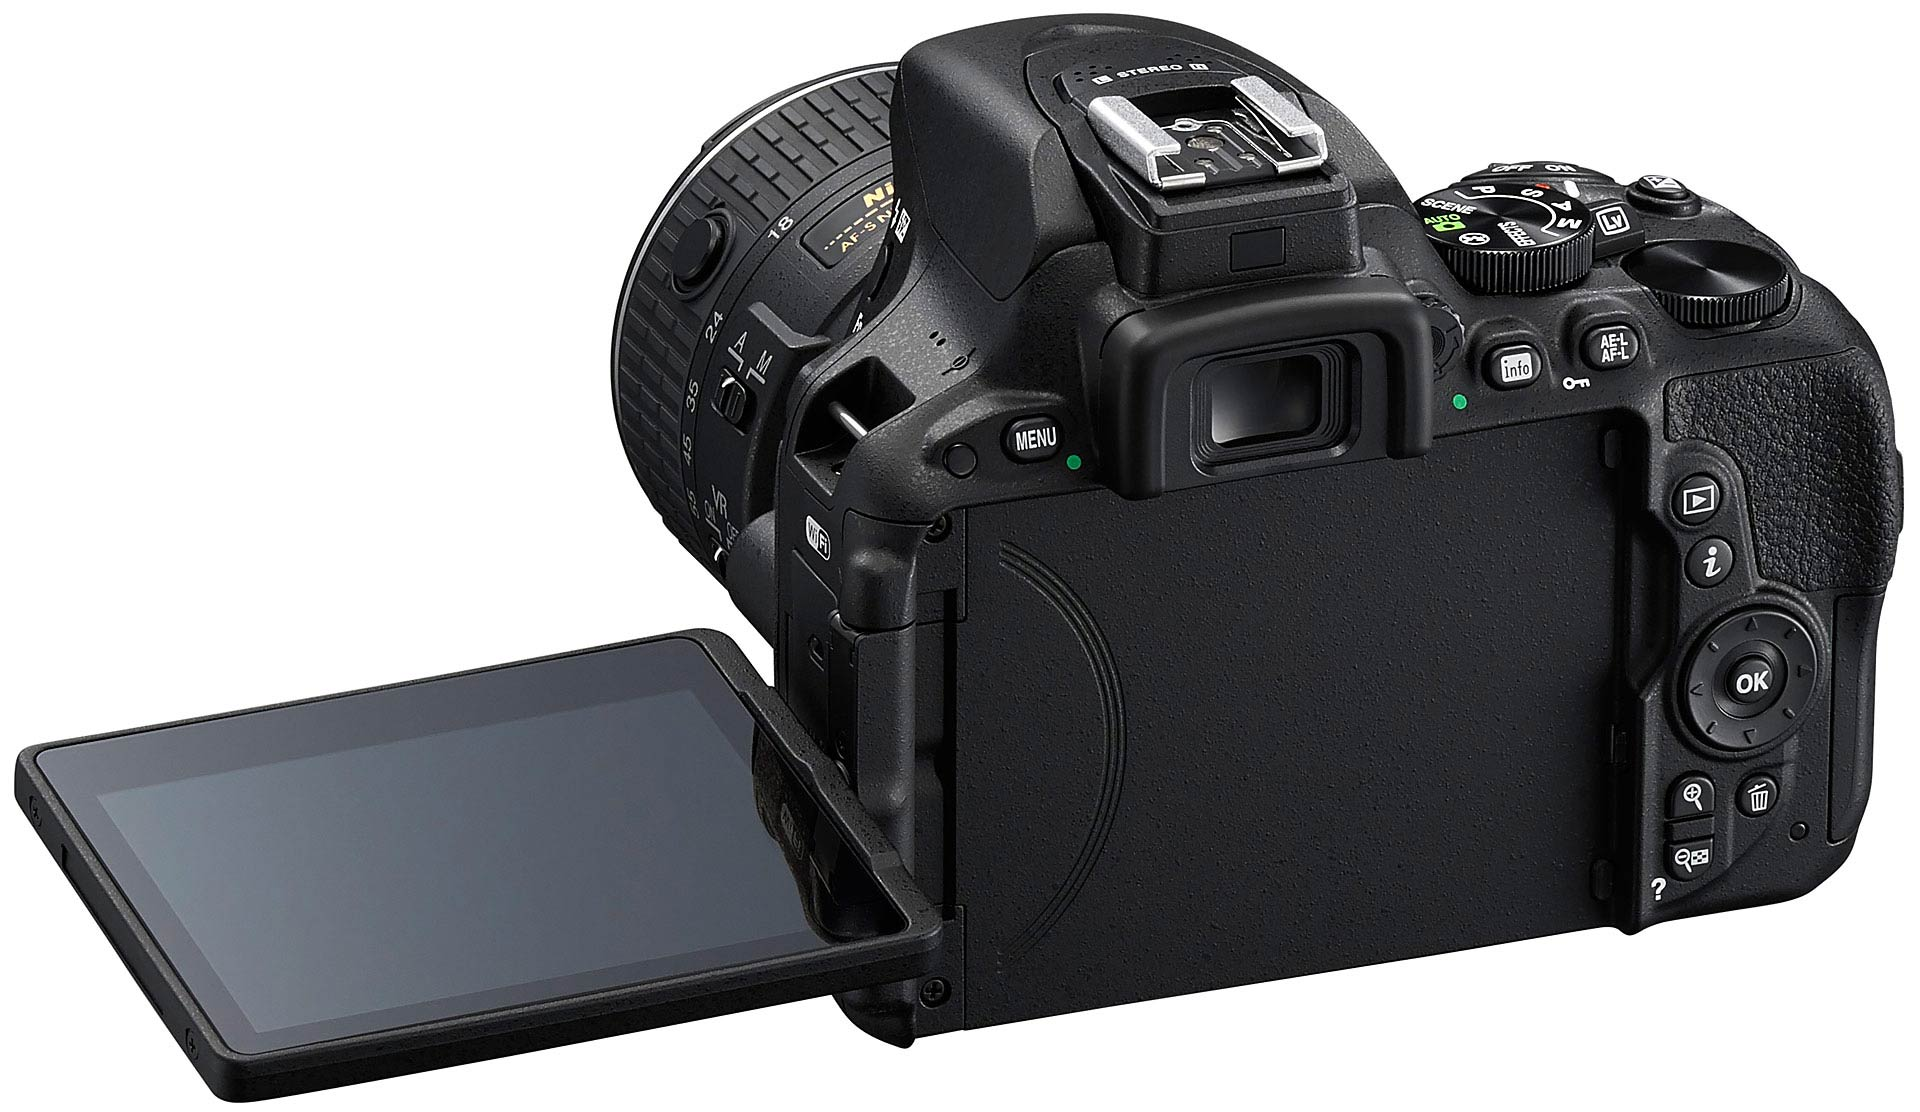 Nikon D5500 articulated screen